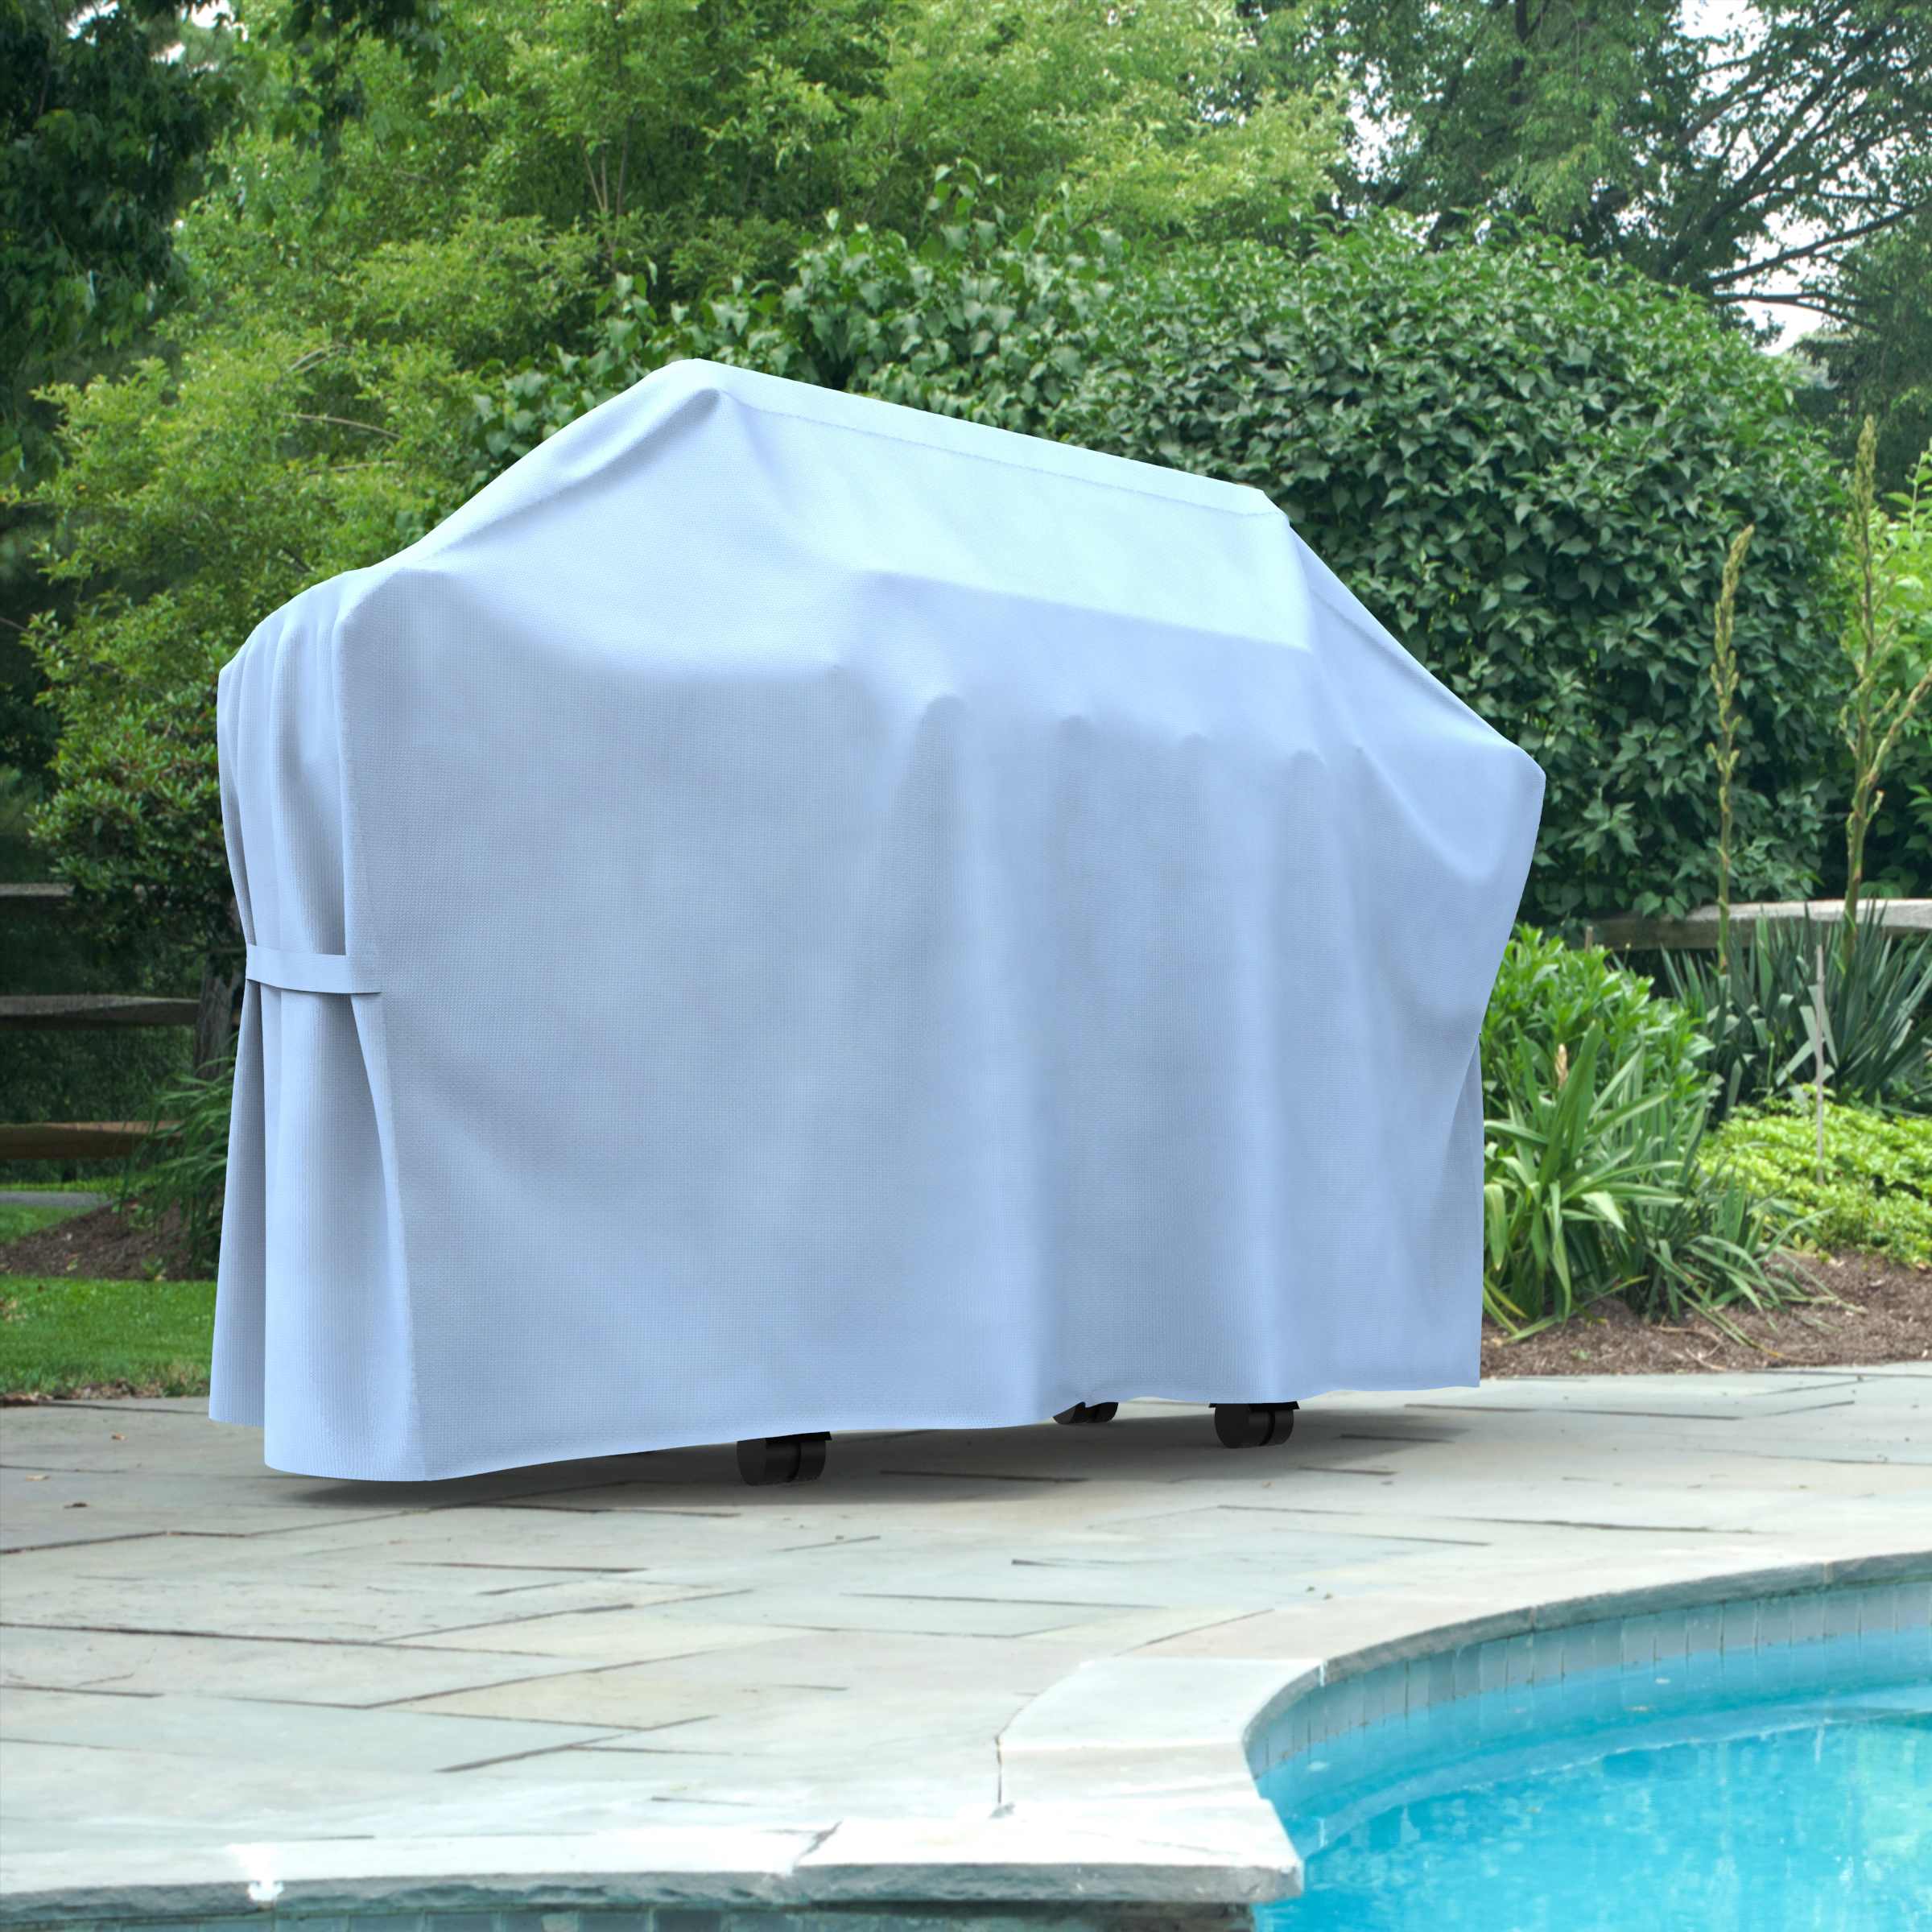 Budge Medium Blue Patio Outdoor BBQ Grill Cover, All-Seasons